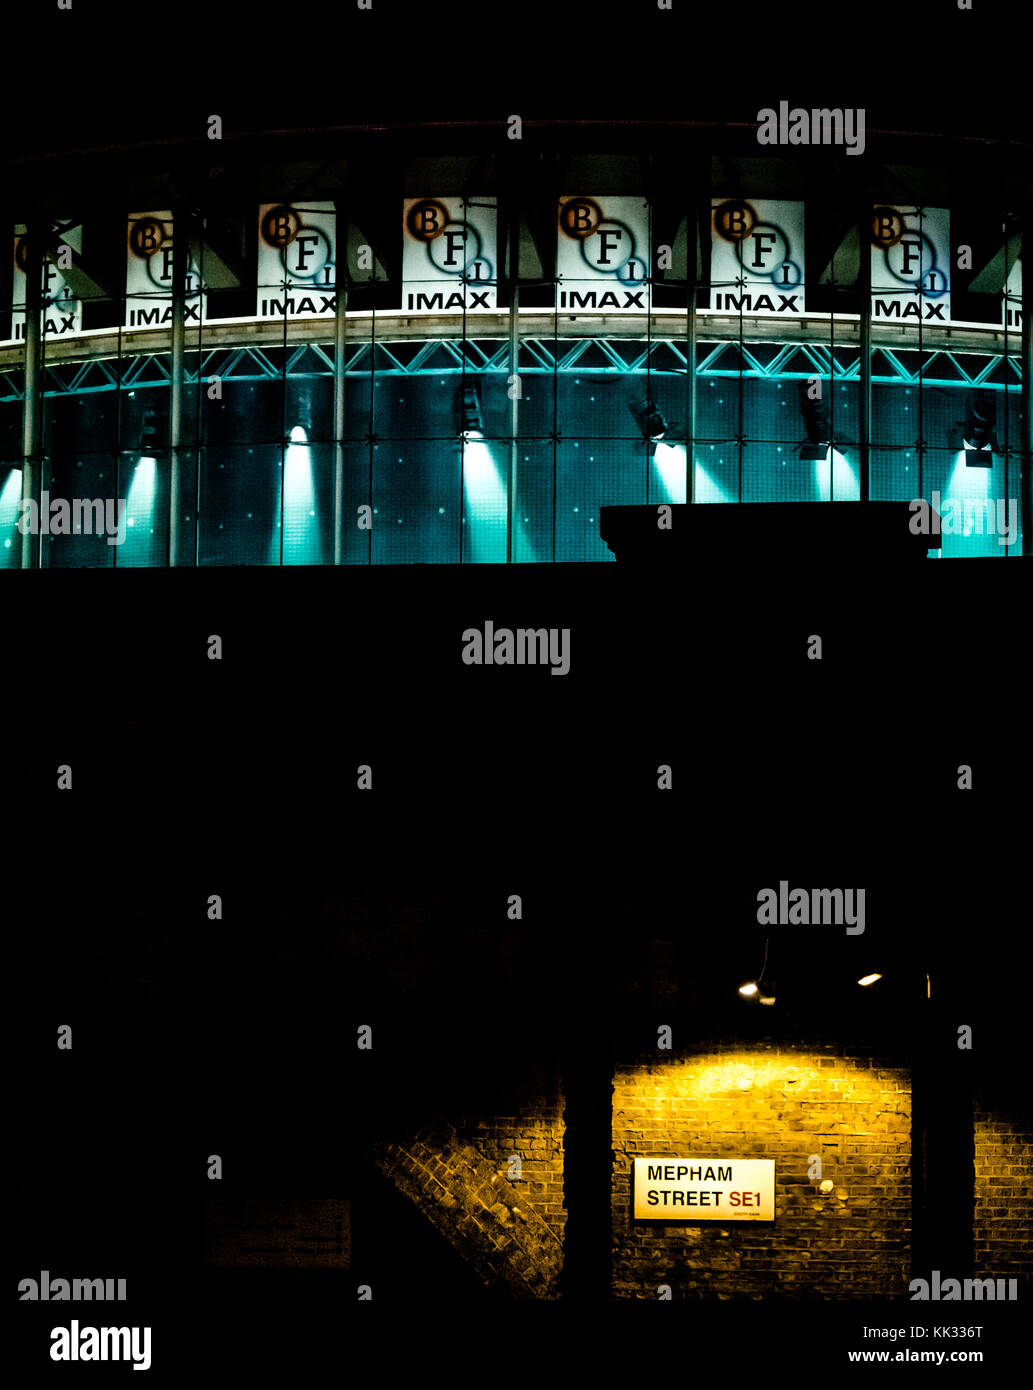 Zoomed night view of the BFI British Film Institute Imax building, South Bank, London, England, UK - Stock Image